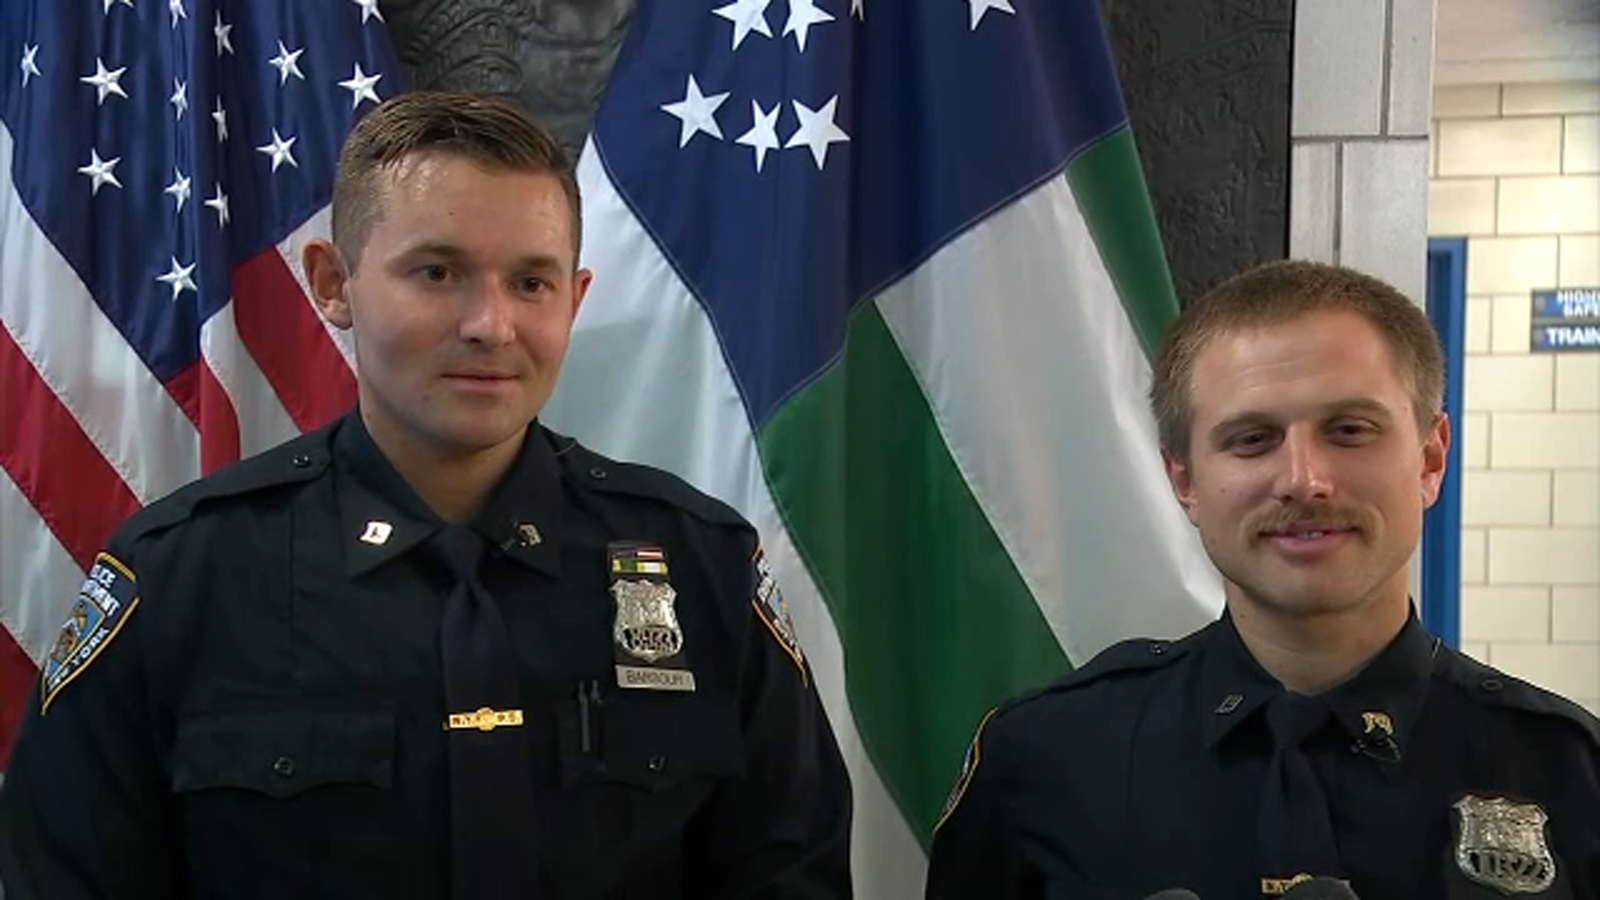 NYPD partners discover they are actually cousins